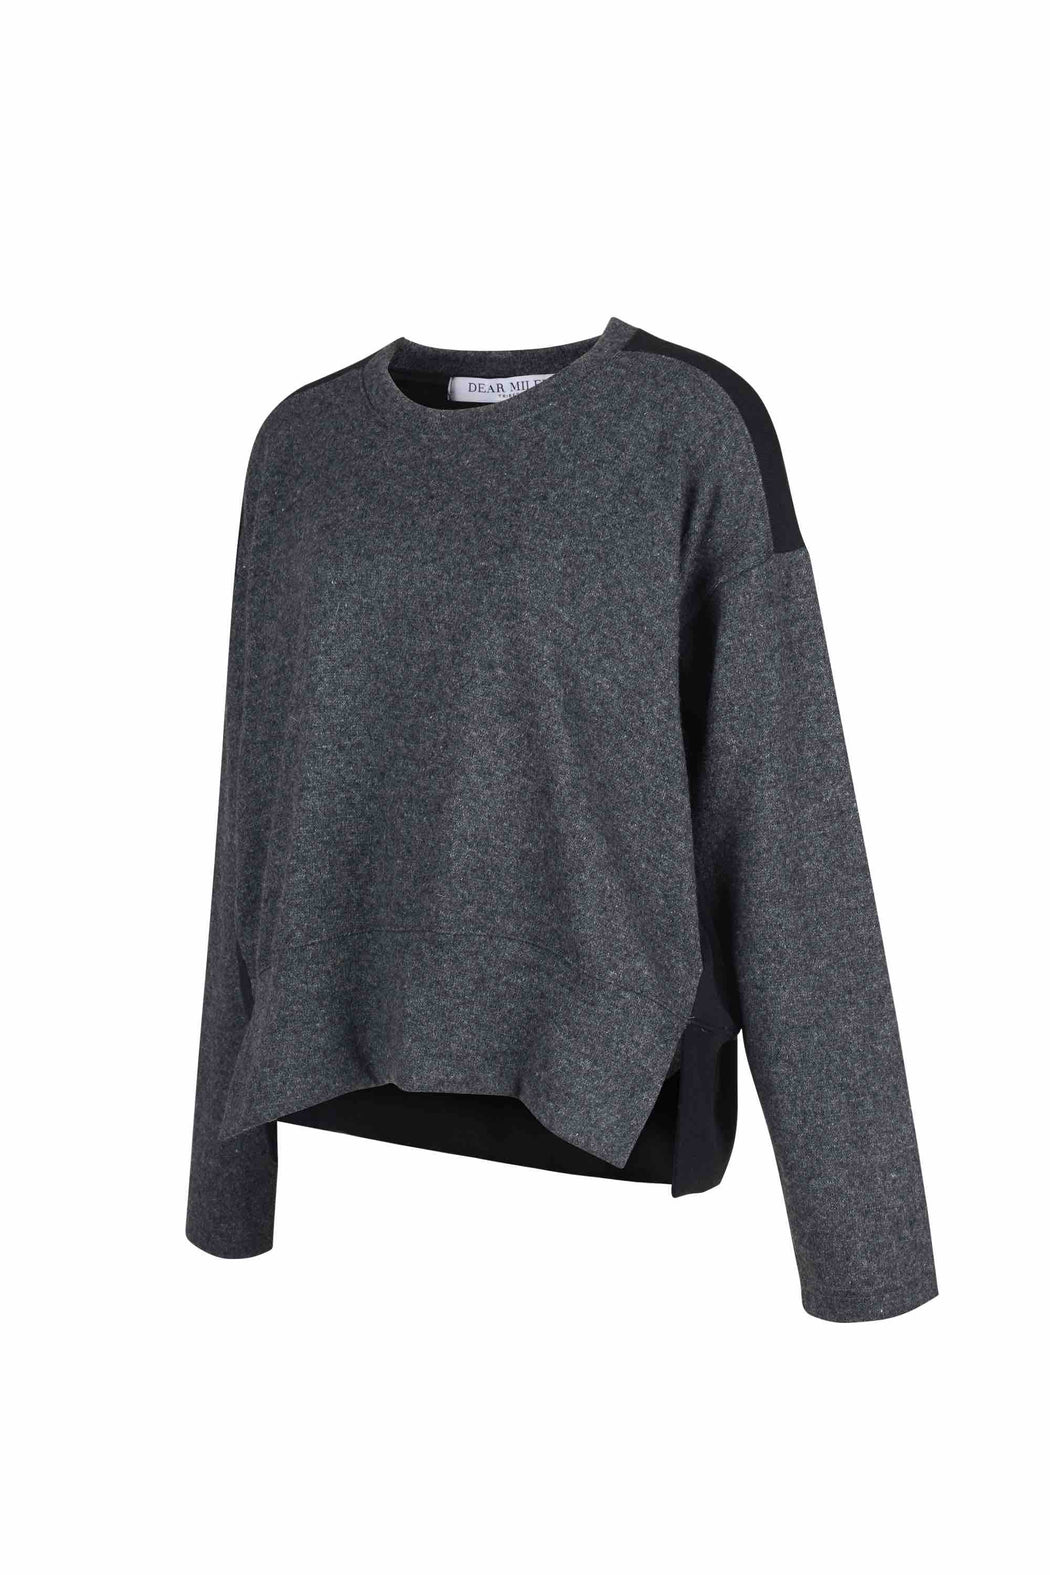 Side view of Women Fabric Block Sweater, made with Organic Cotton and wool blends in black/melange grey